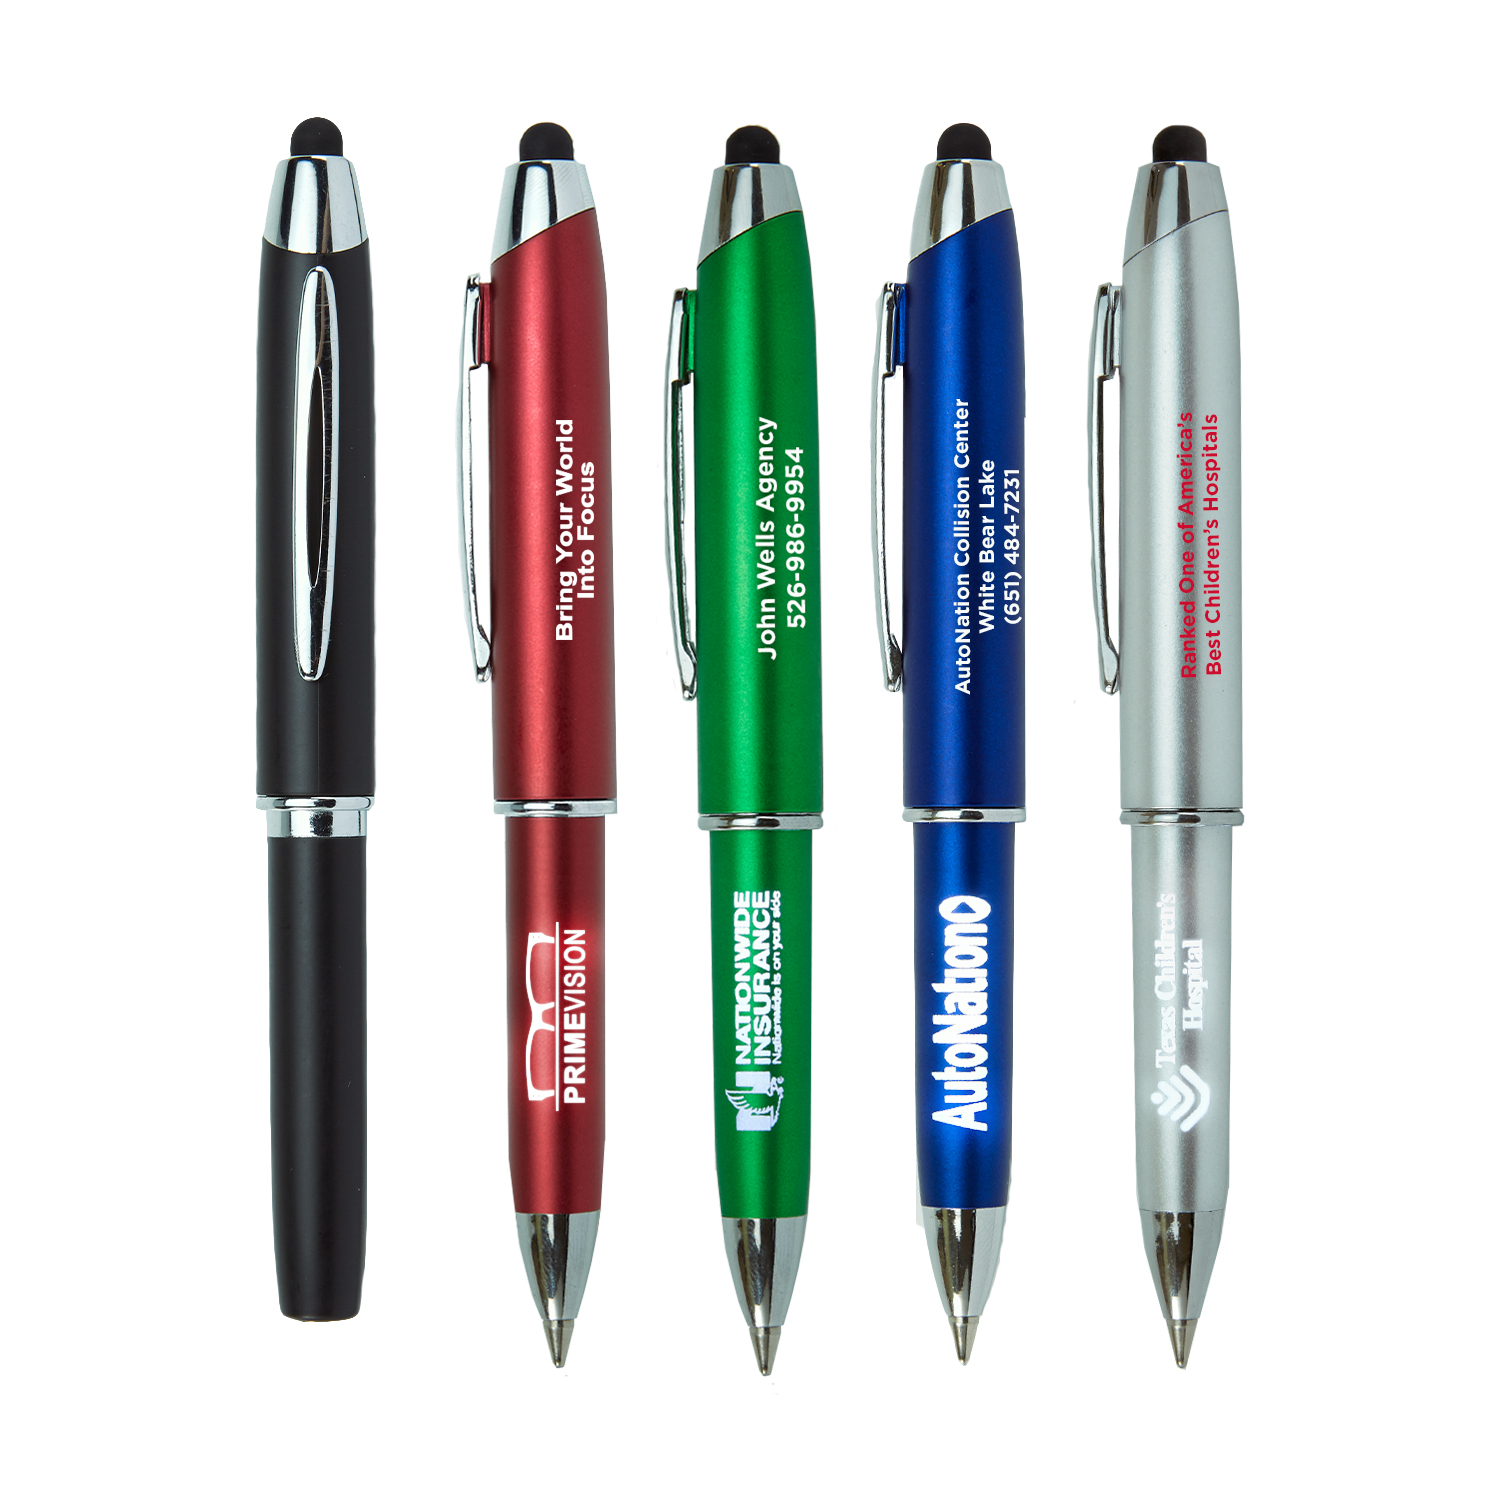 Redondo Illuminated MC Stylus Pen